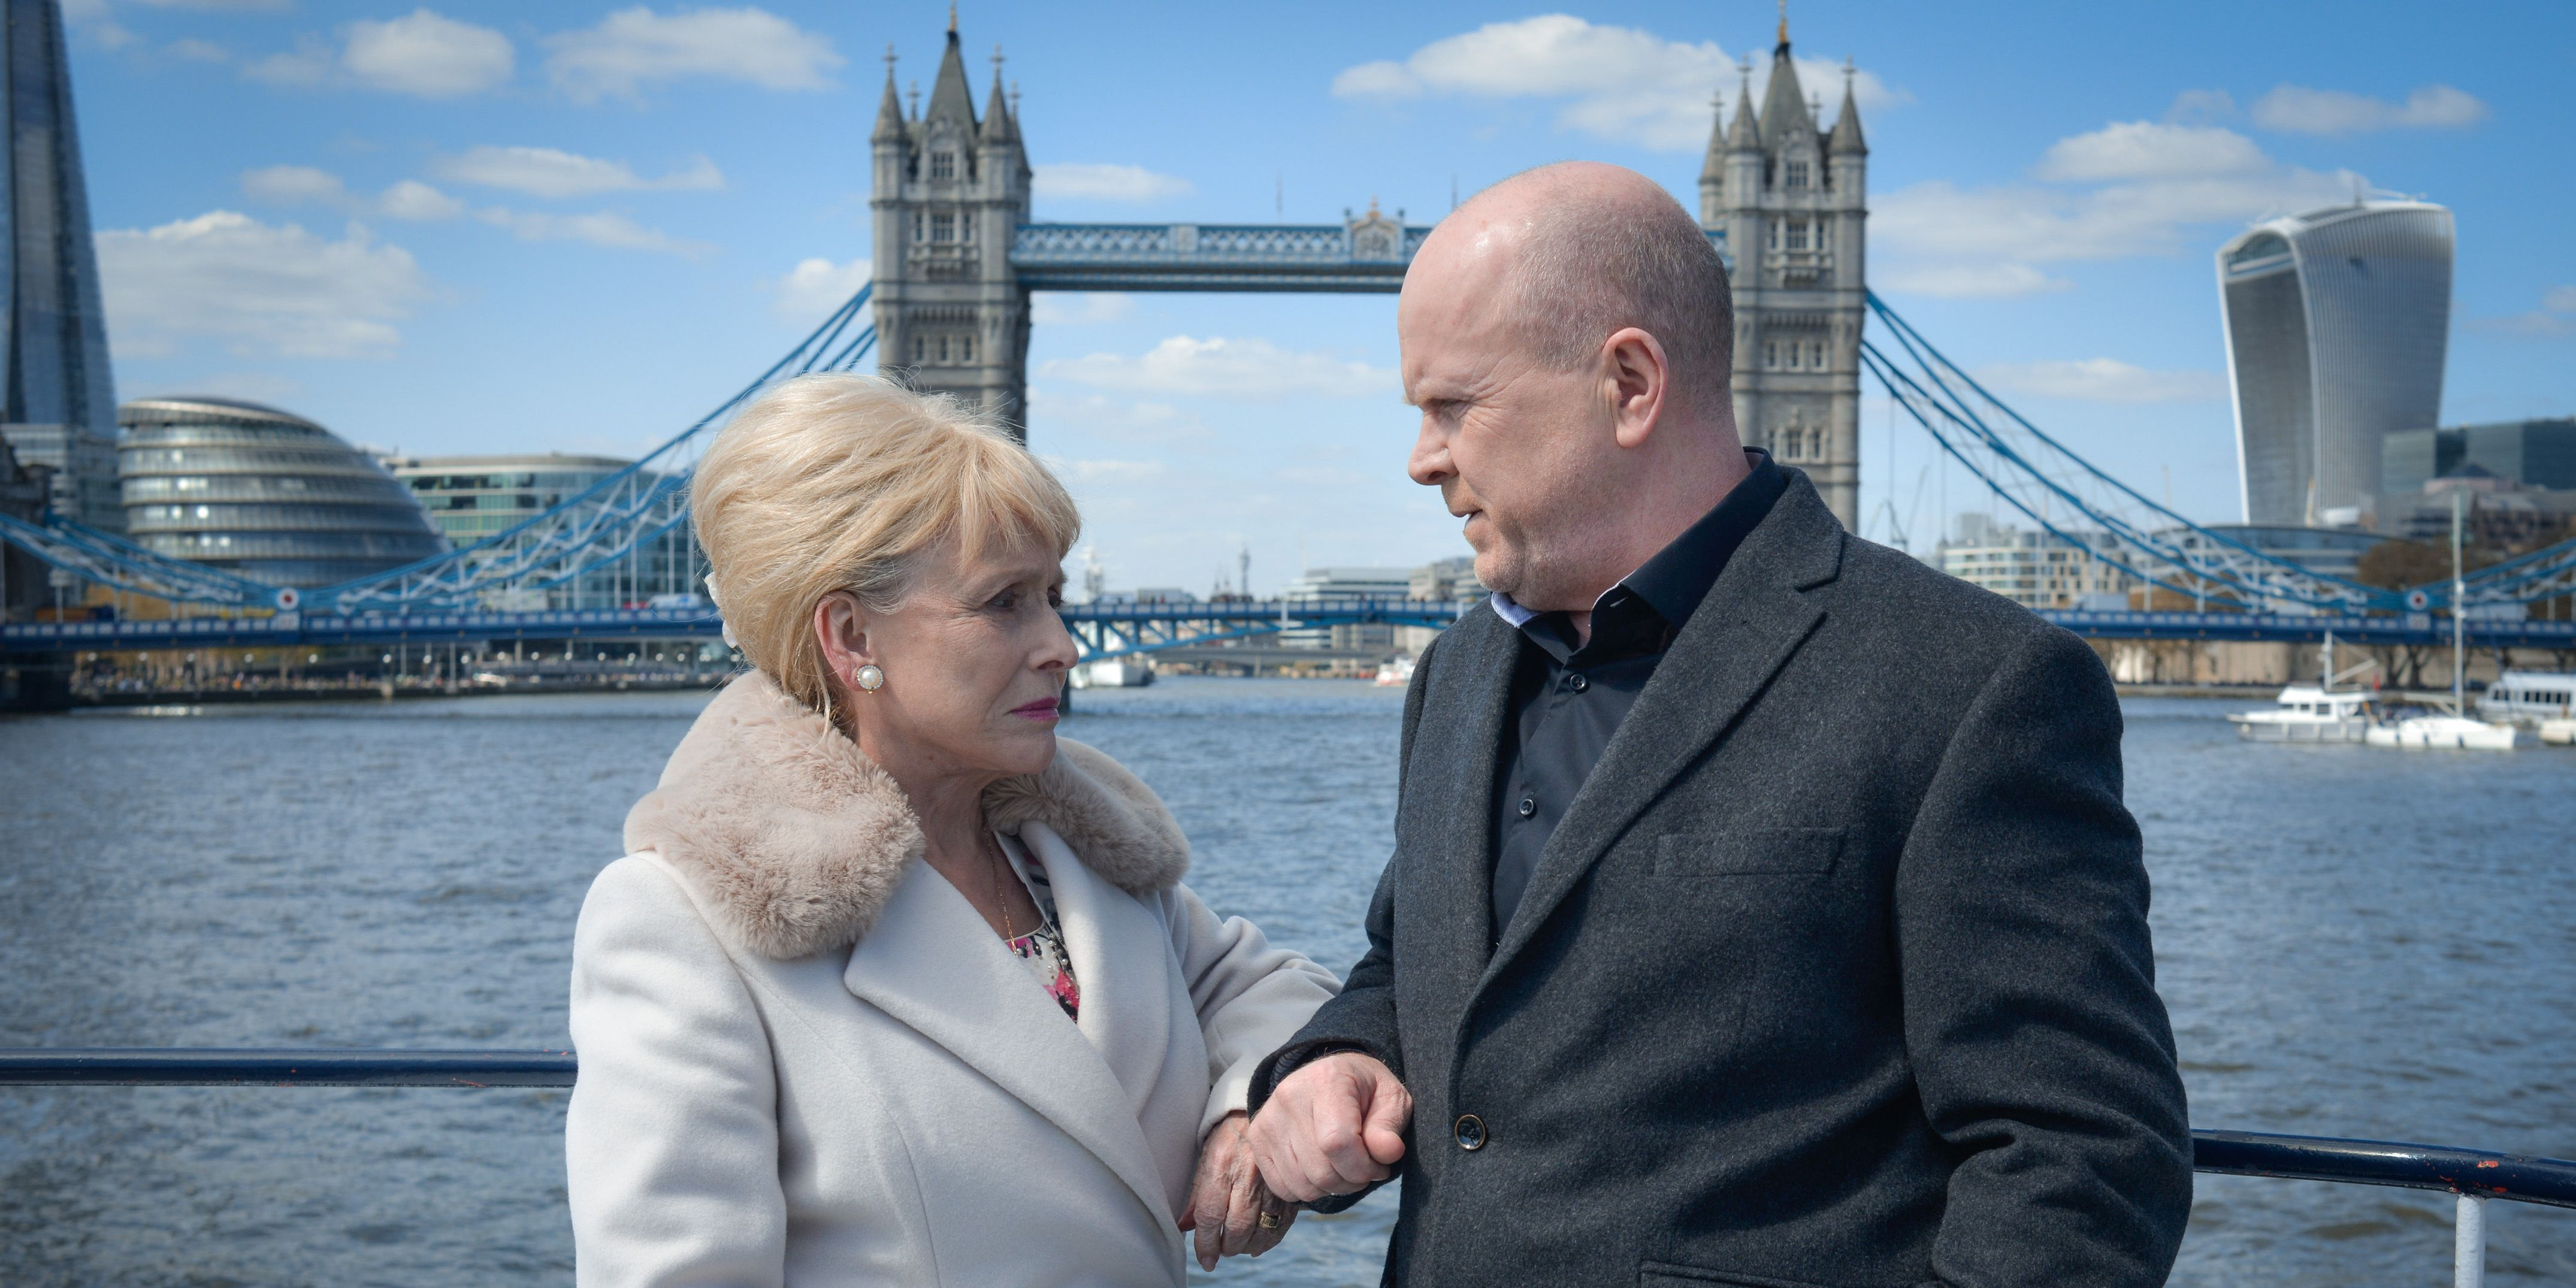 Peggy and Phil take a boat trip down the Thames